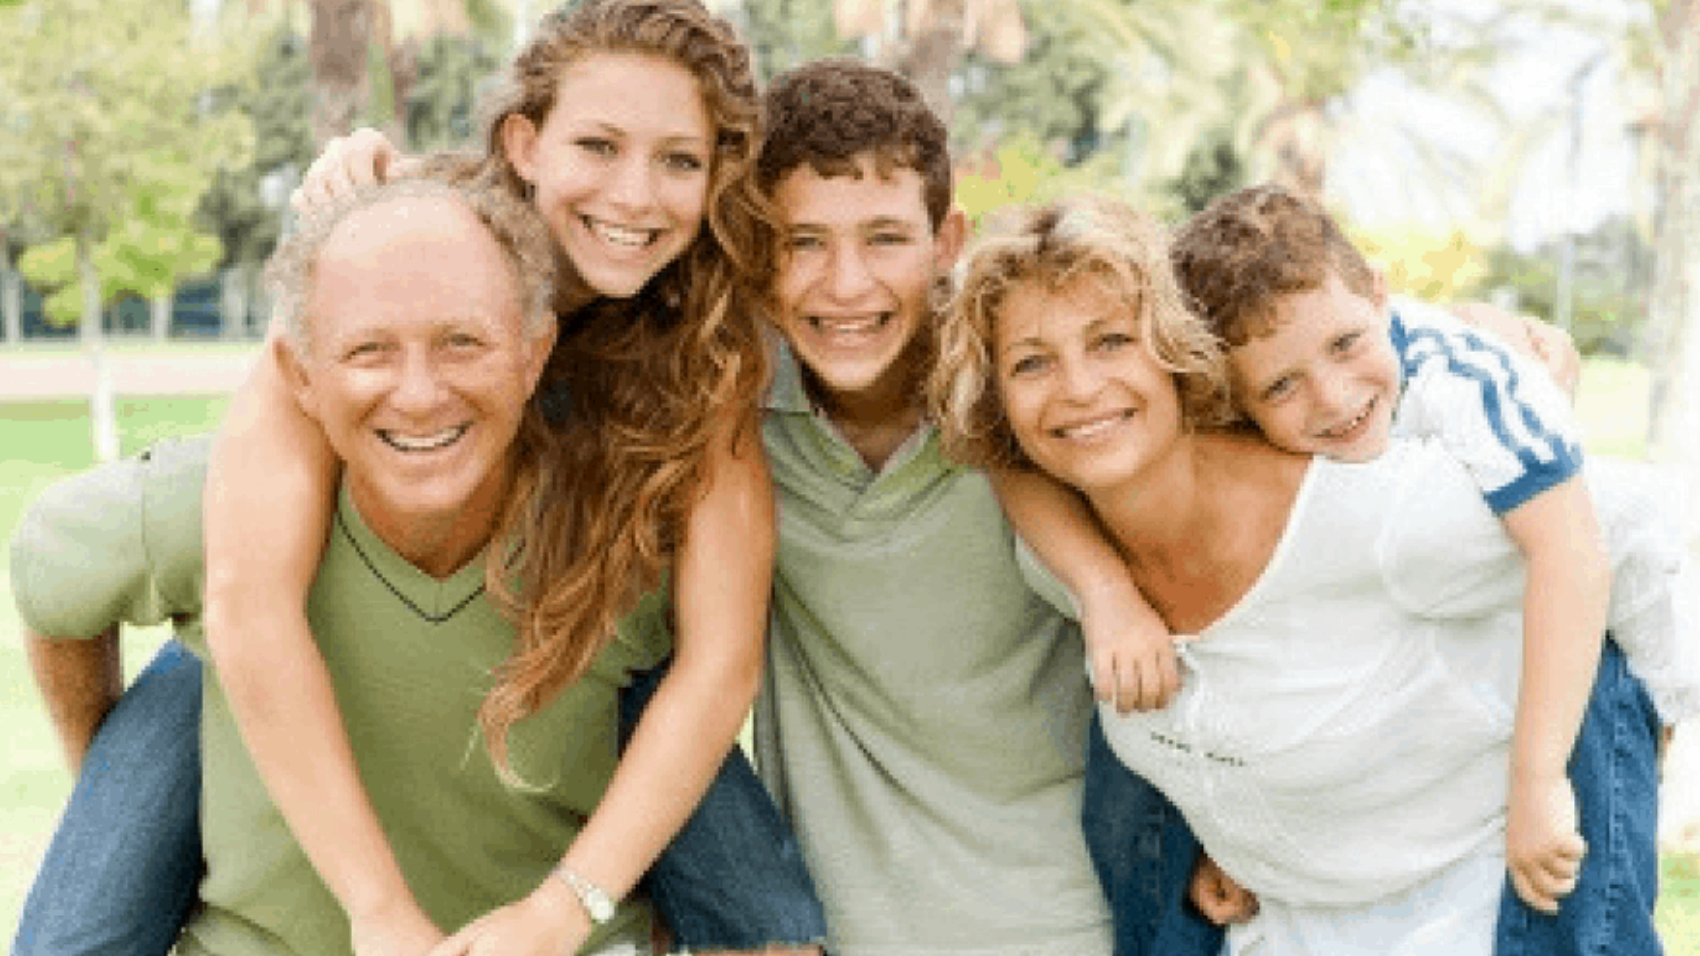 Bridging The Generational Gap With The Elderly